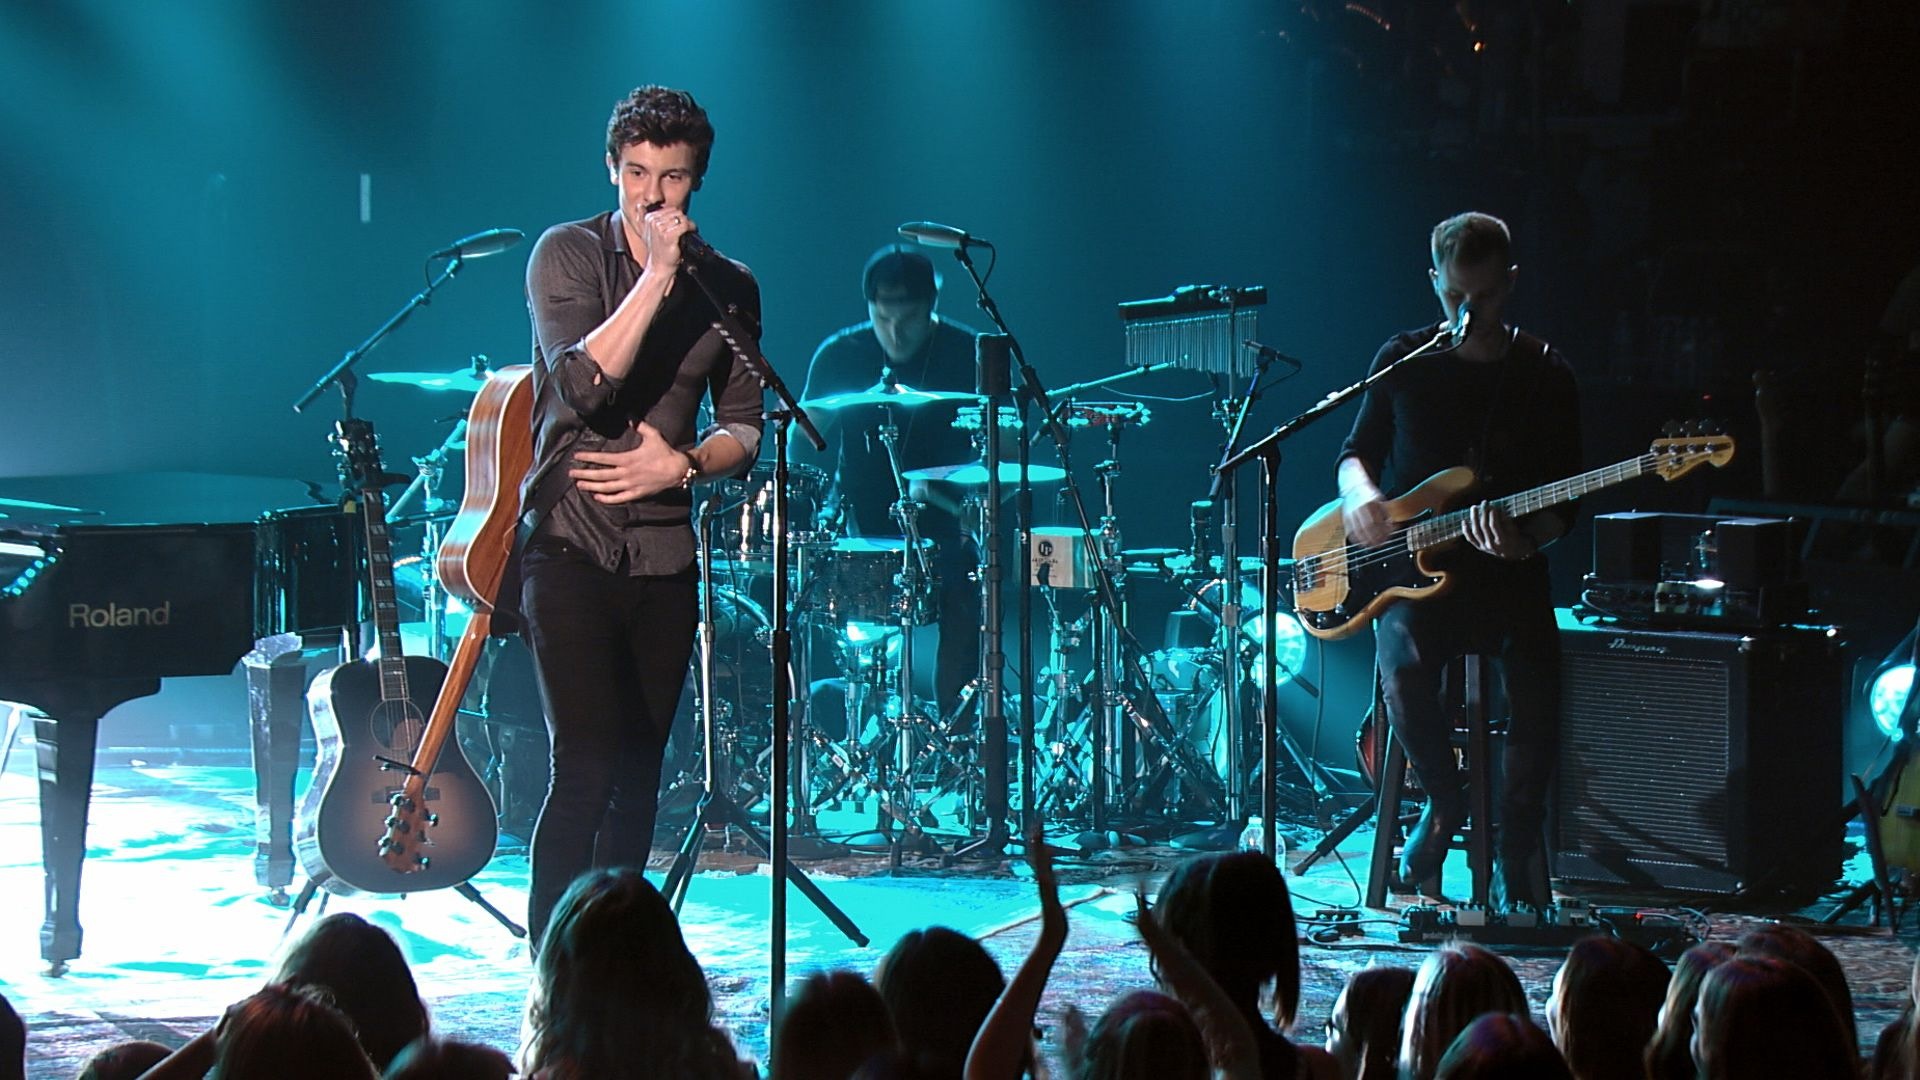 Mtv Unplugged E1 Shawn Mendes Unplugged Full Episode